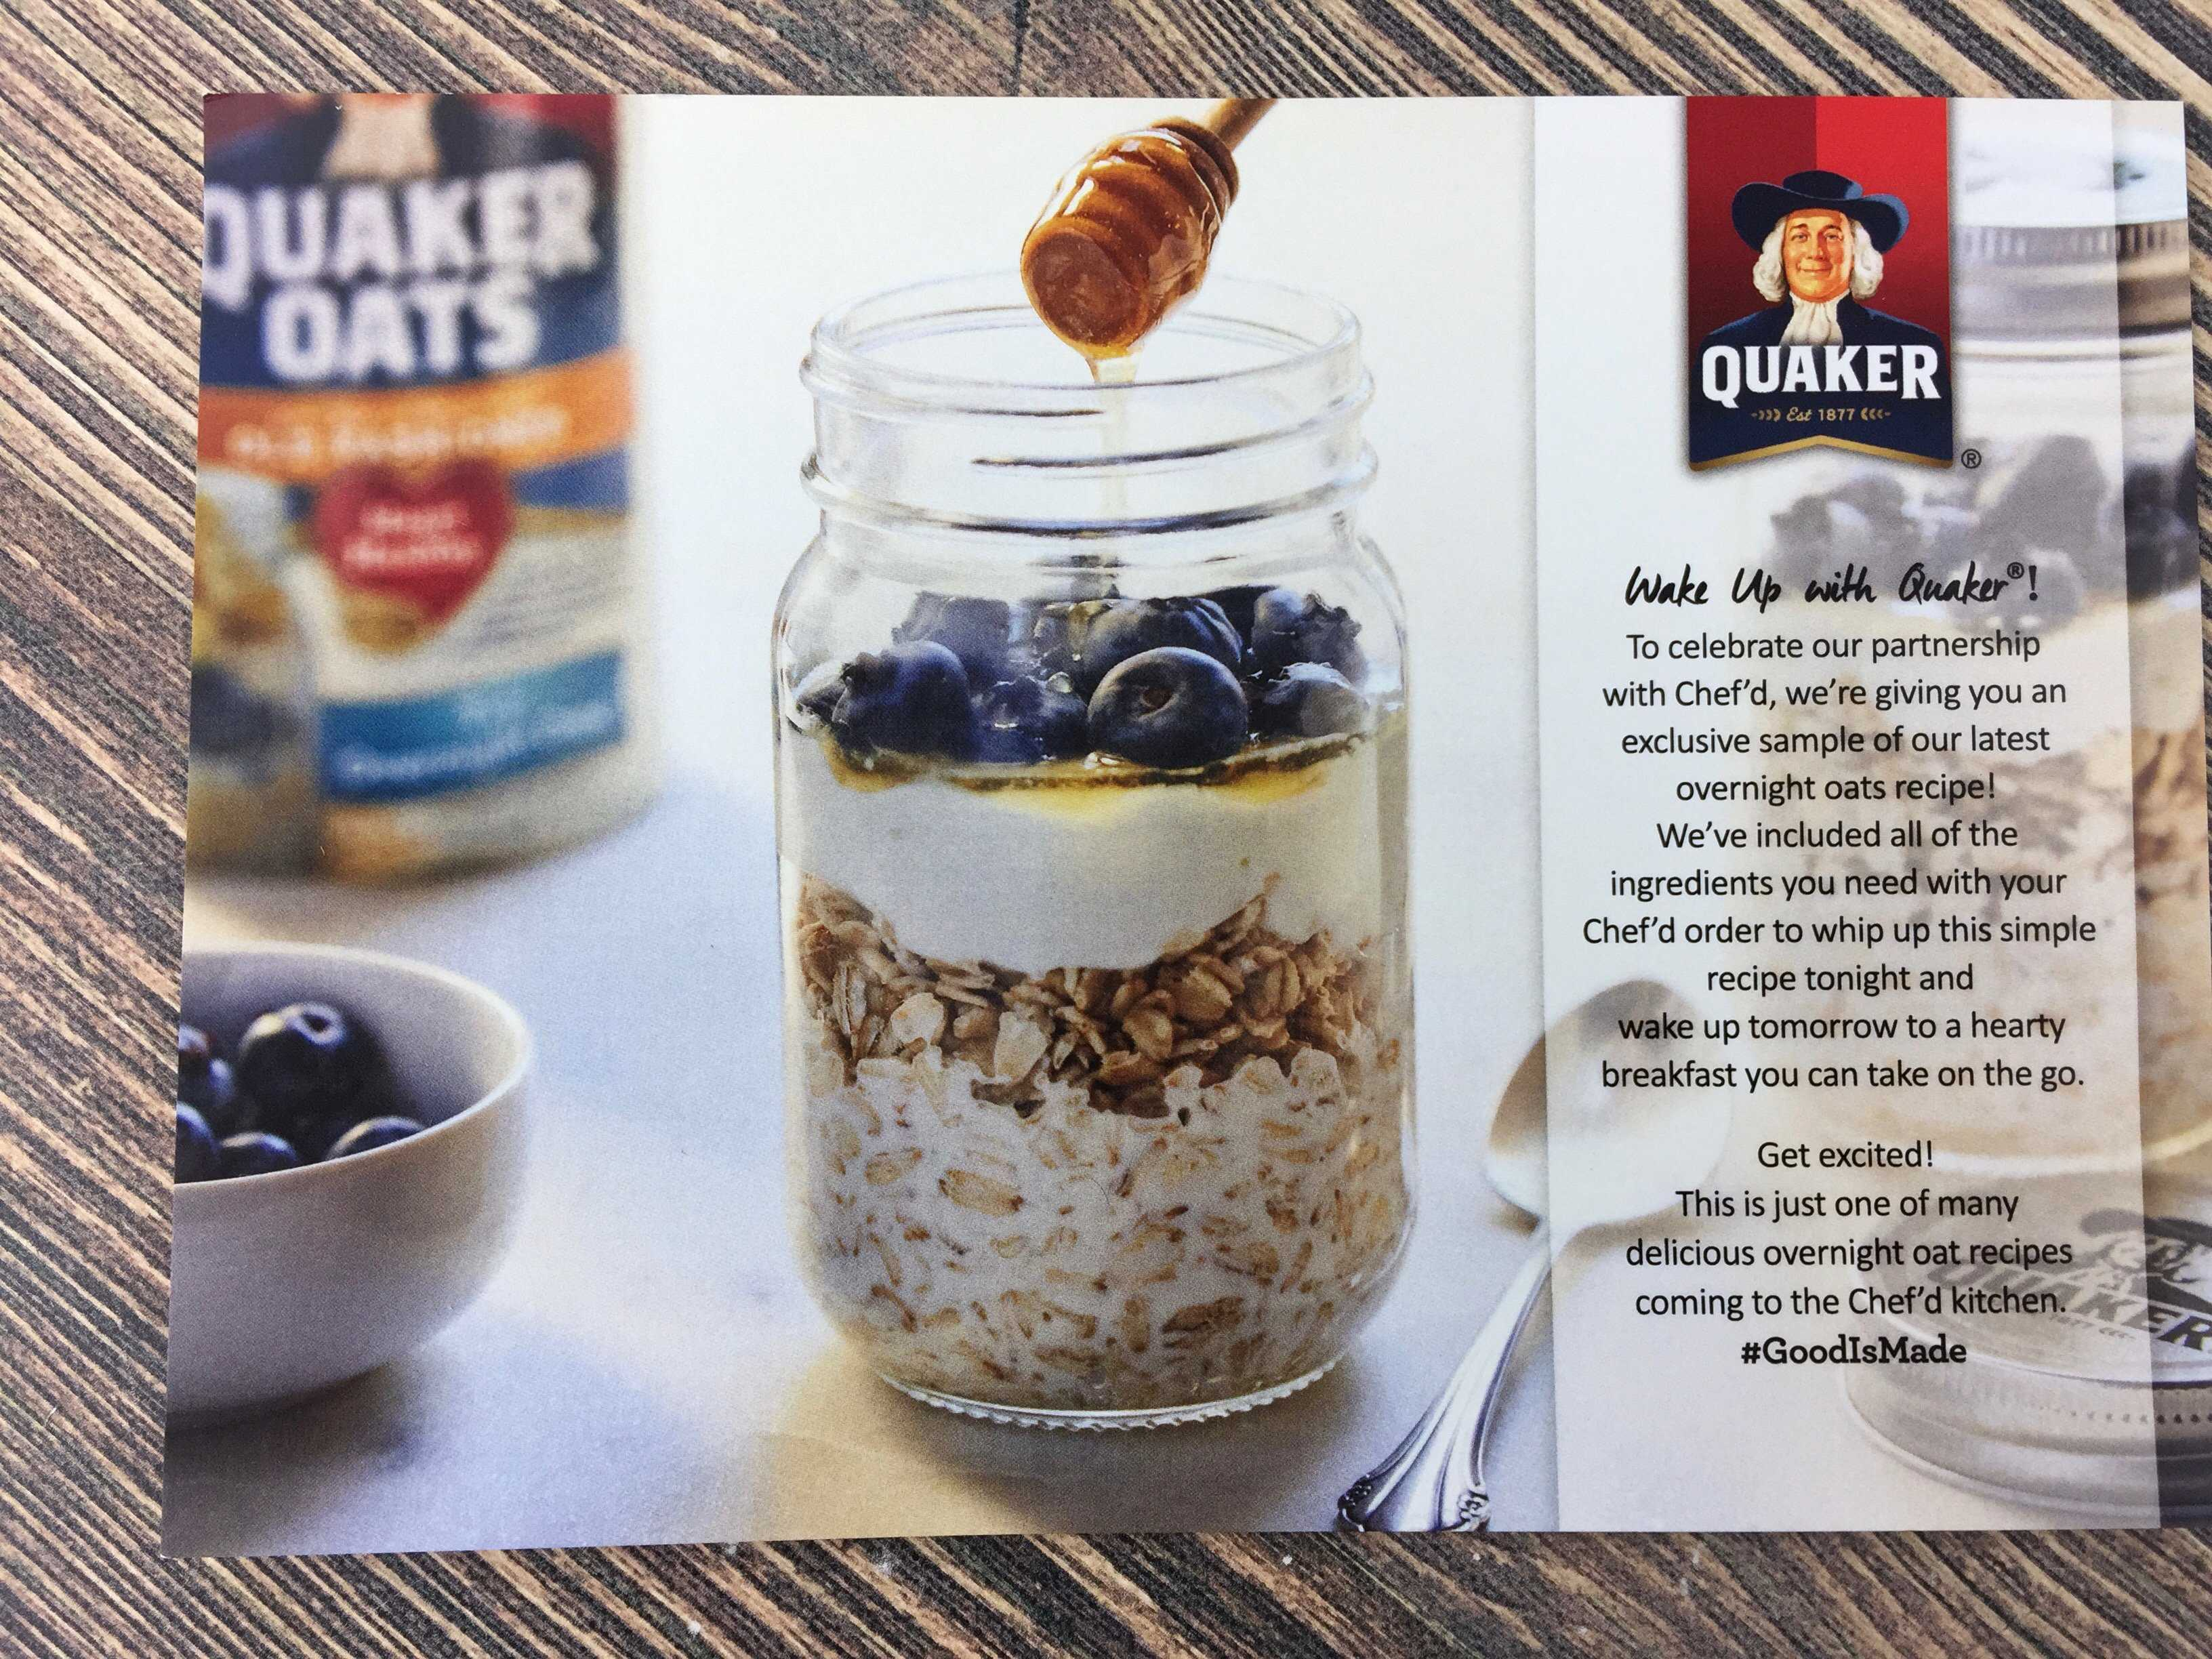 Chefd Box Review Coupon January 2017 Hello Subscription Quaker Instant Oatmeal Jar 1 Carton 12 Pcs P Trial Of A Oats Overnight Recipe The Included Booklet Had Several Variations On Basic But Our All Ingredients To